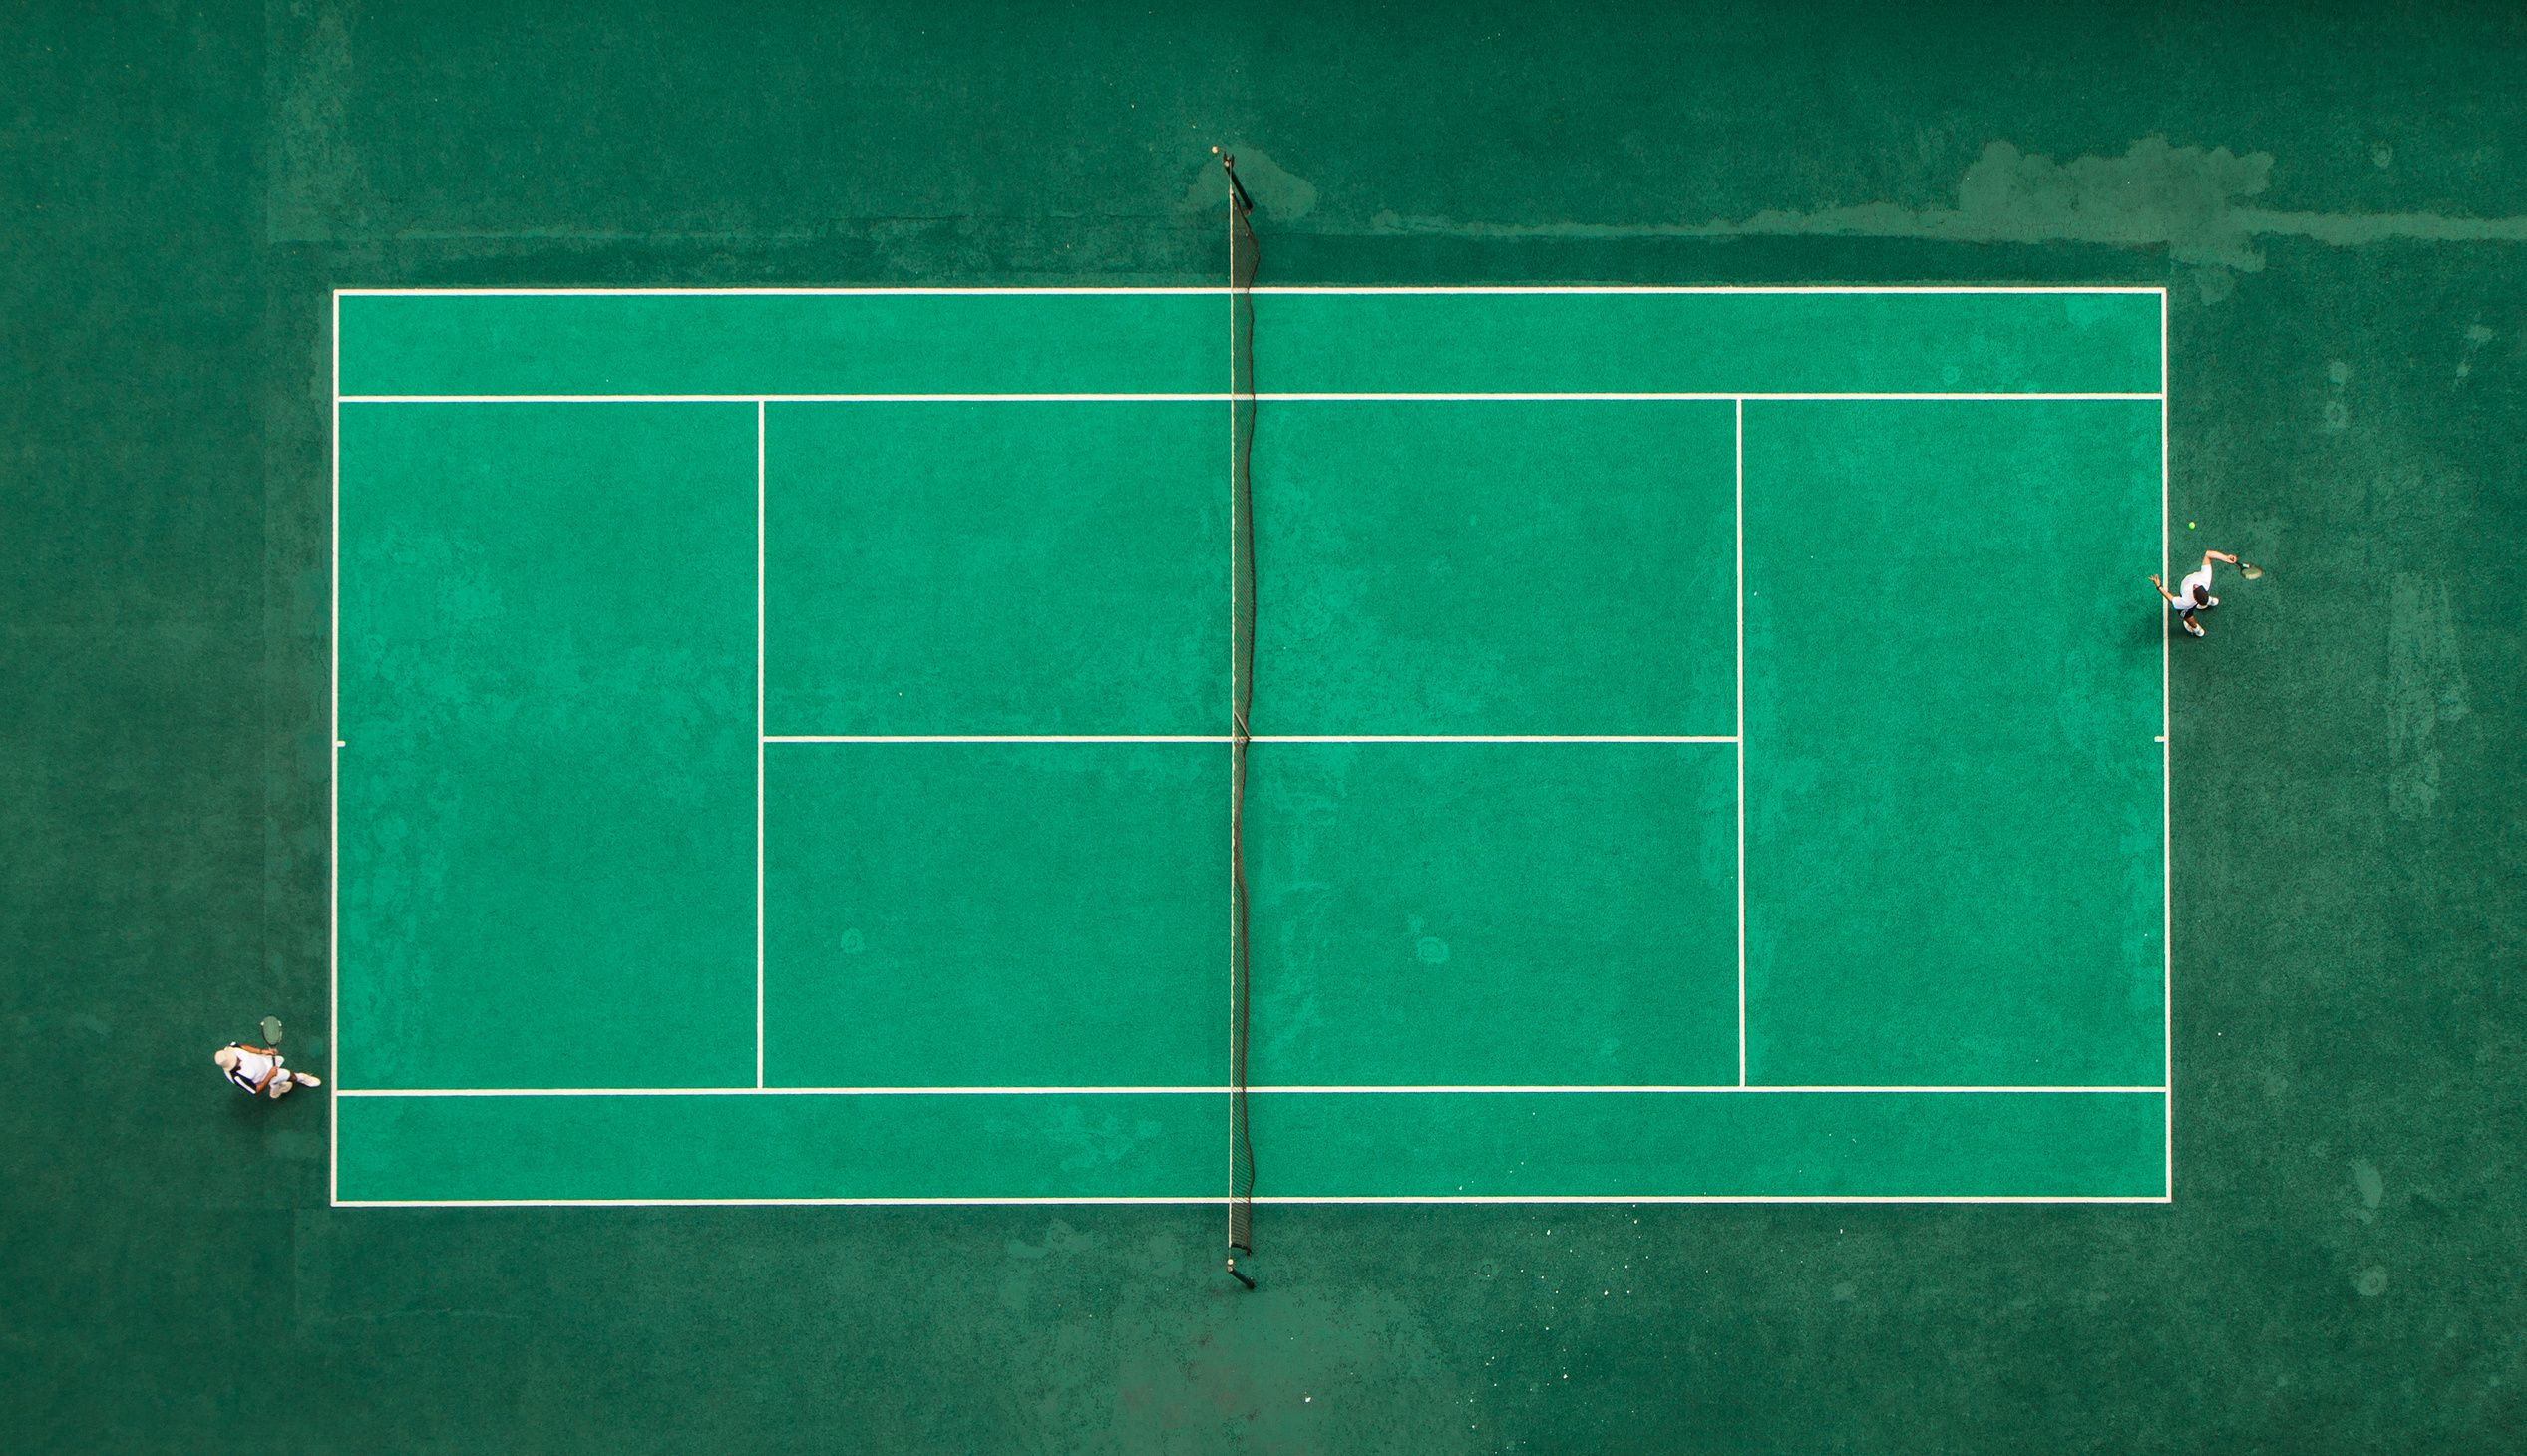 Surprising Aesthetic Sport Places Wall Murals Tennis Sports